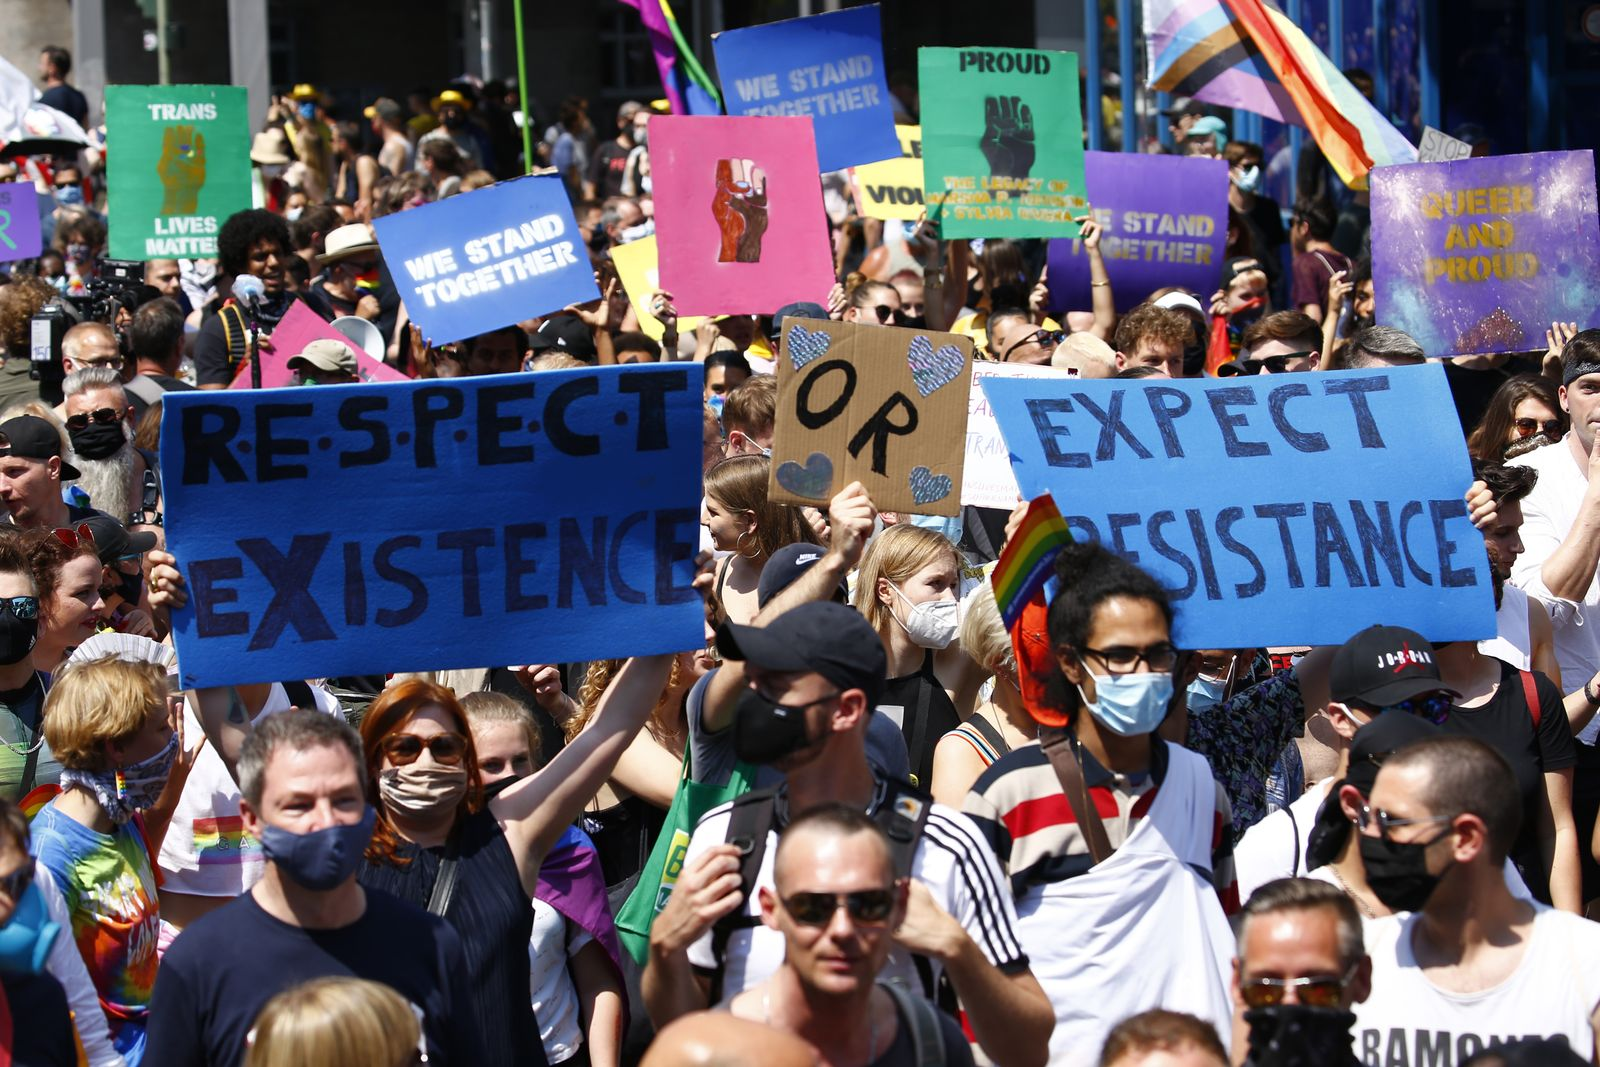 Berlin Pride March During The Coronavirus Pandemic